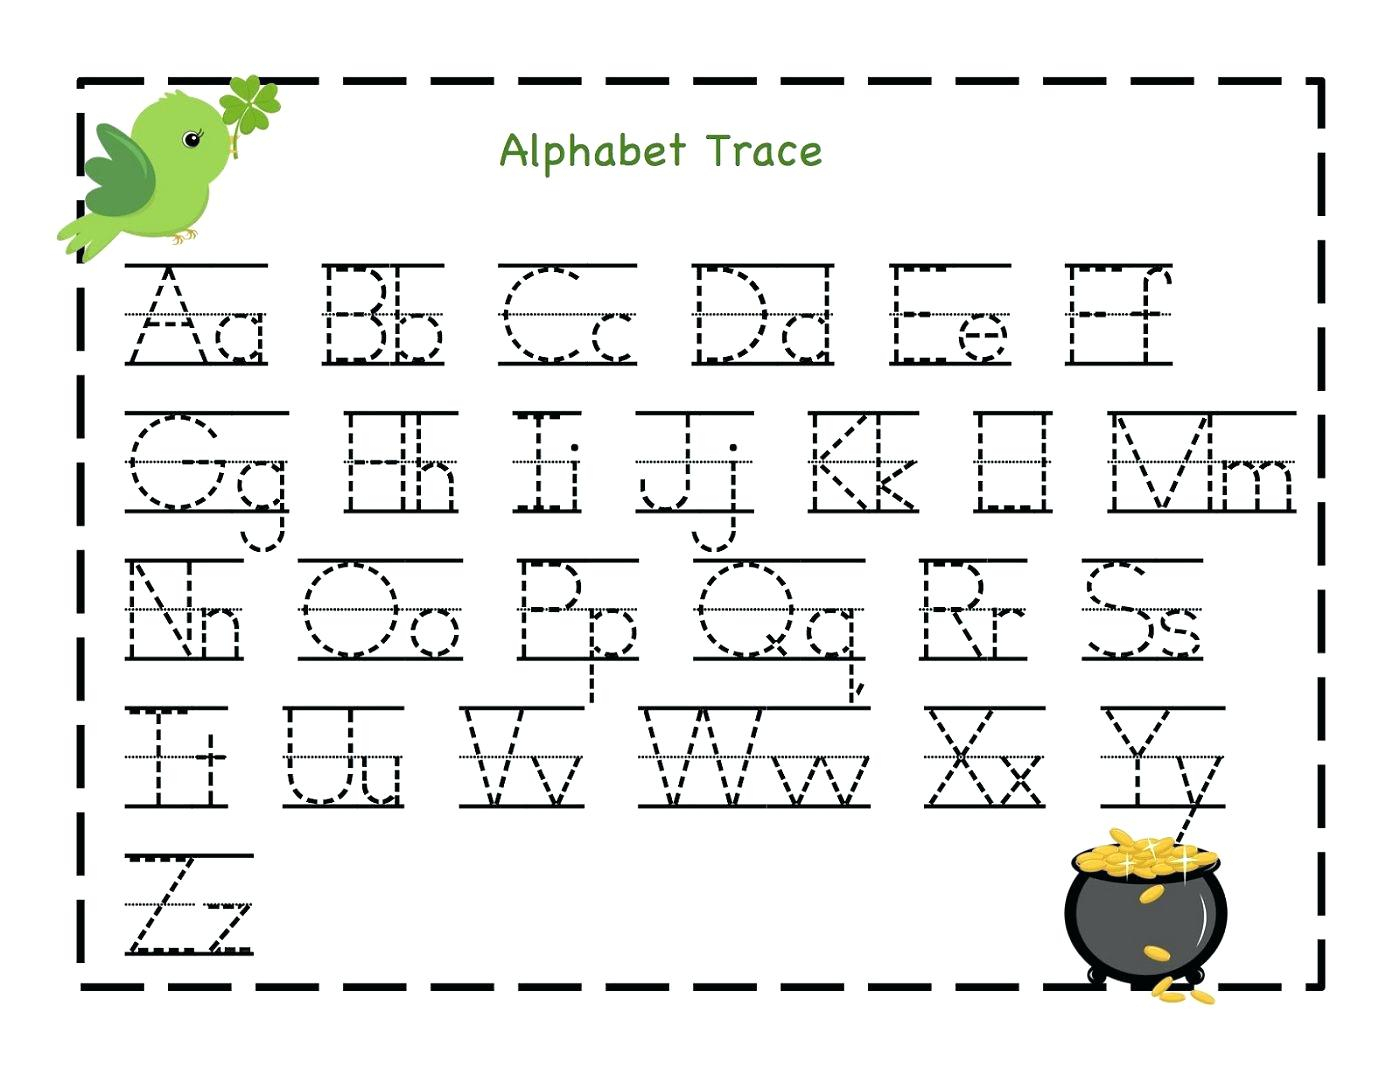 Letter Tracing Worksheets Uppercase And Lowercase Letters throughout Alphabet Tracing Worksheets With Arrows